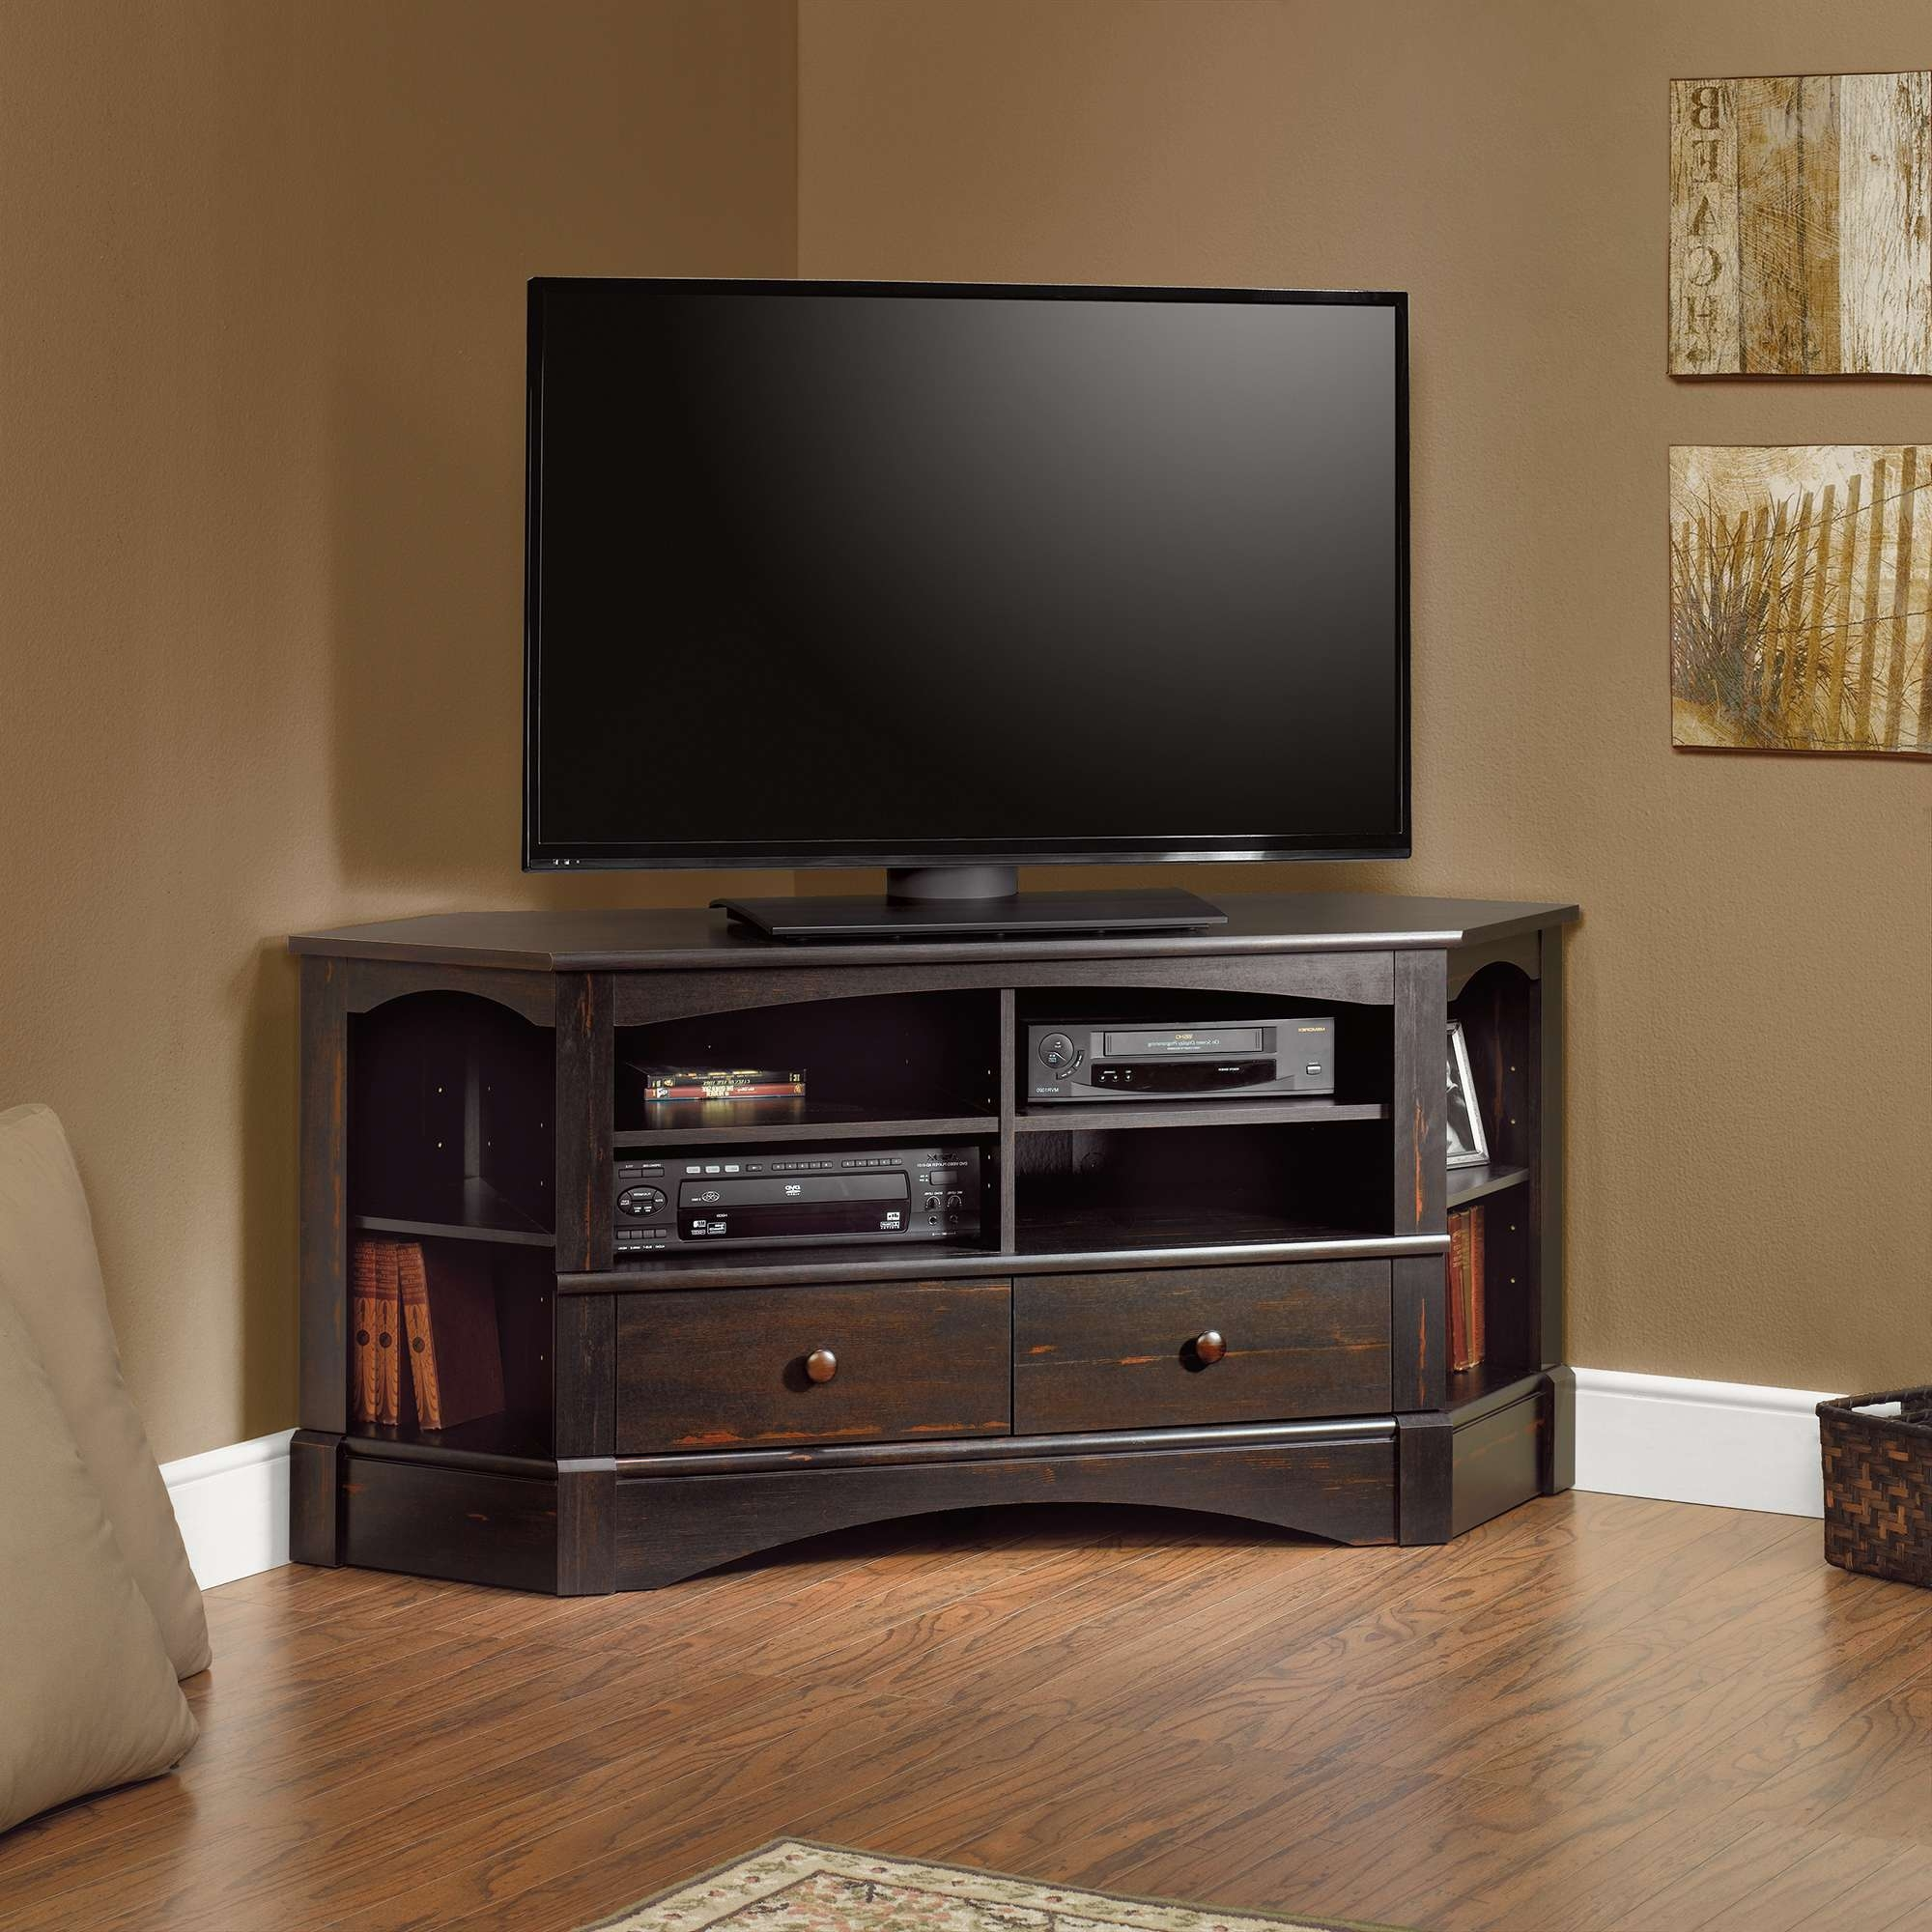 Harbor View | Corner Entertainment Credenza | 402902 | Sauder For Solid Wood Corner Tv Cabinets (View 9 of 20)